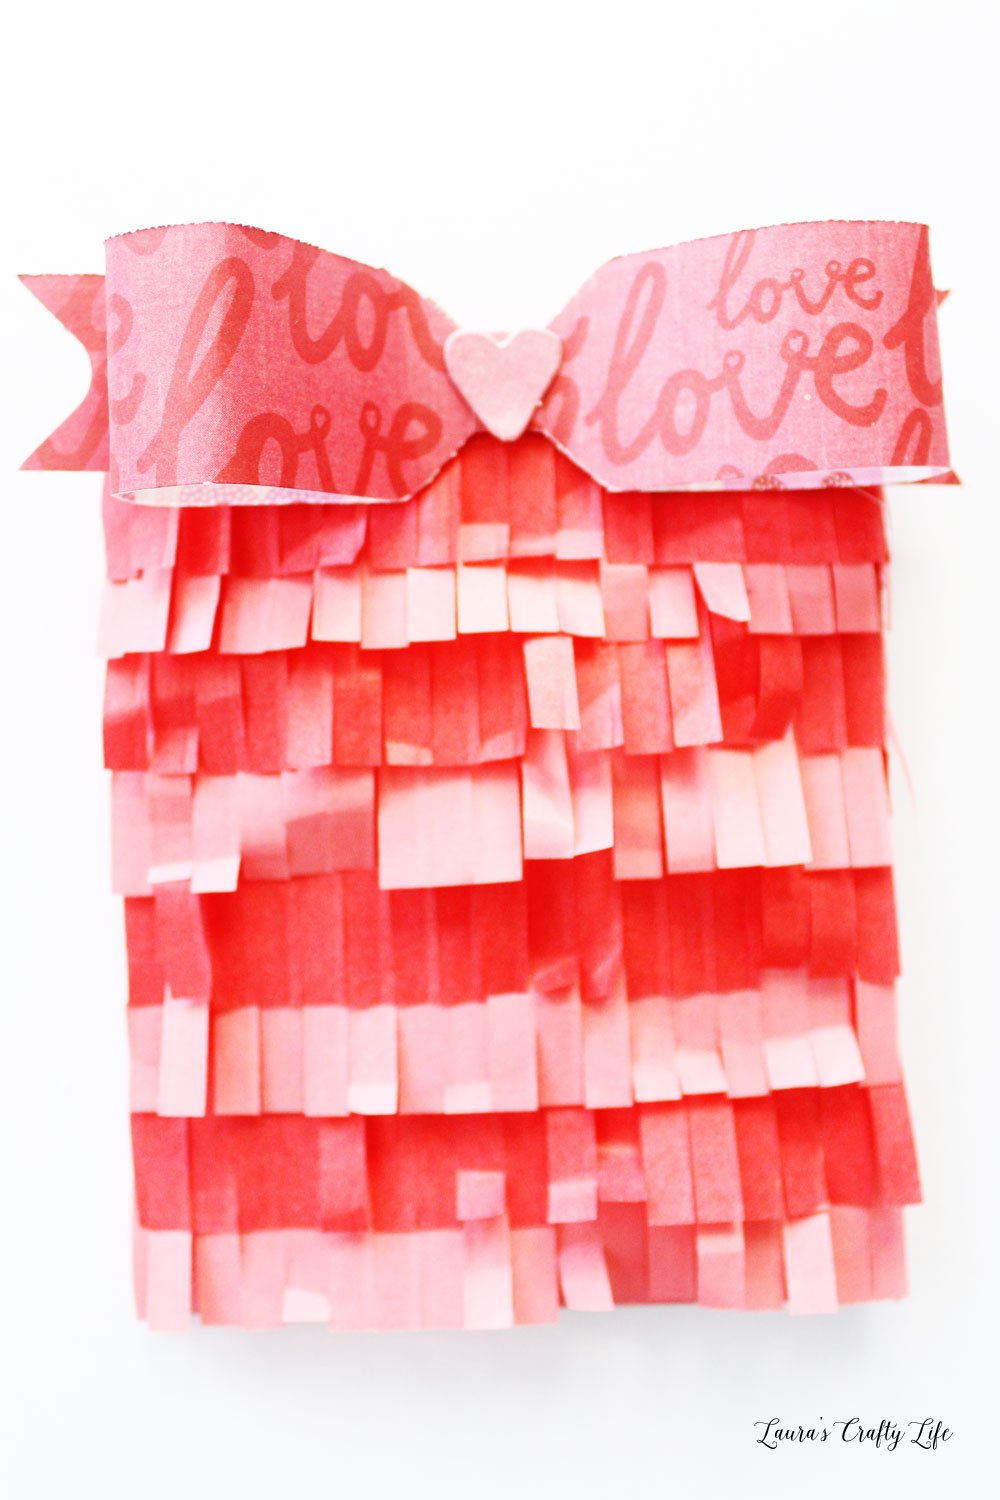 Create a pretty fringed envelope for Valentine's Day using the 1-2-3 punch board